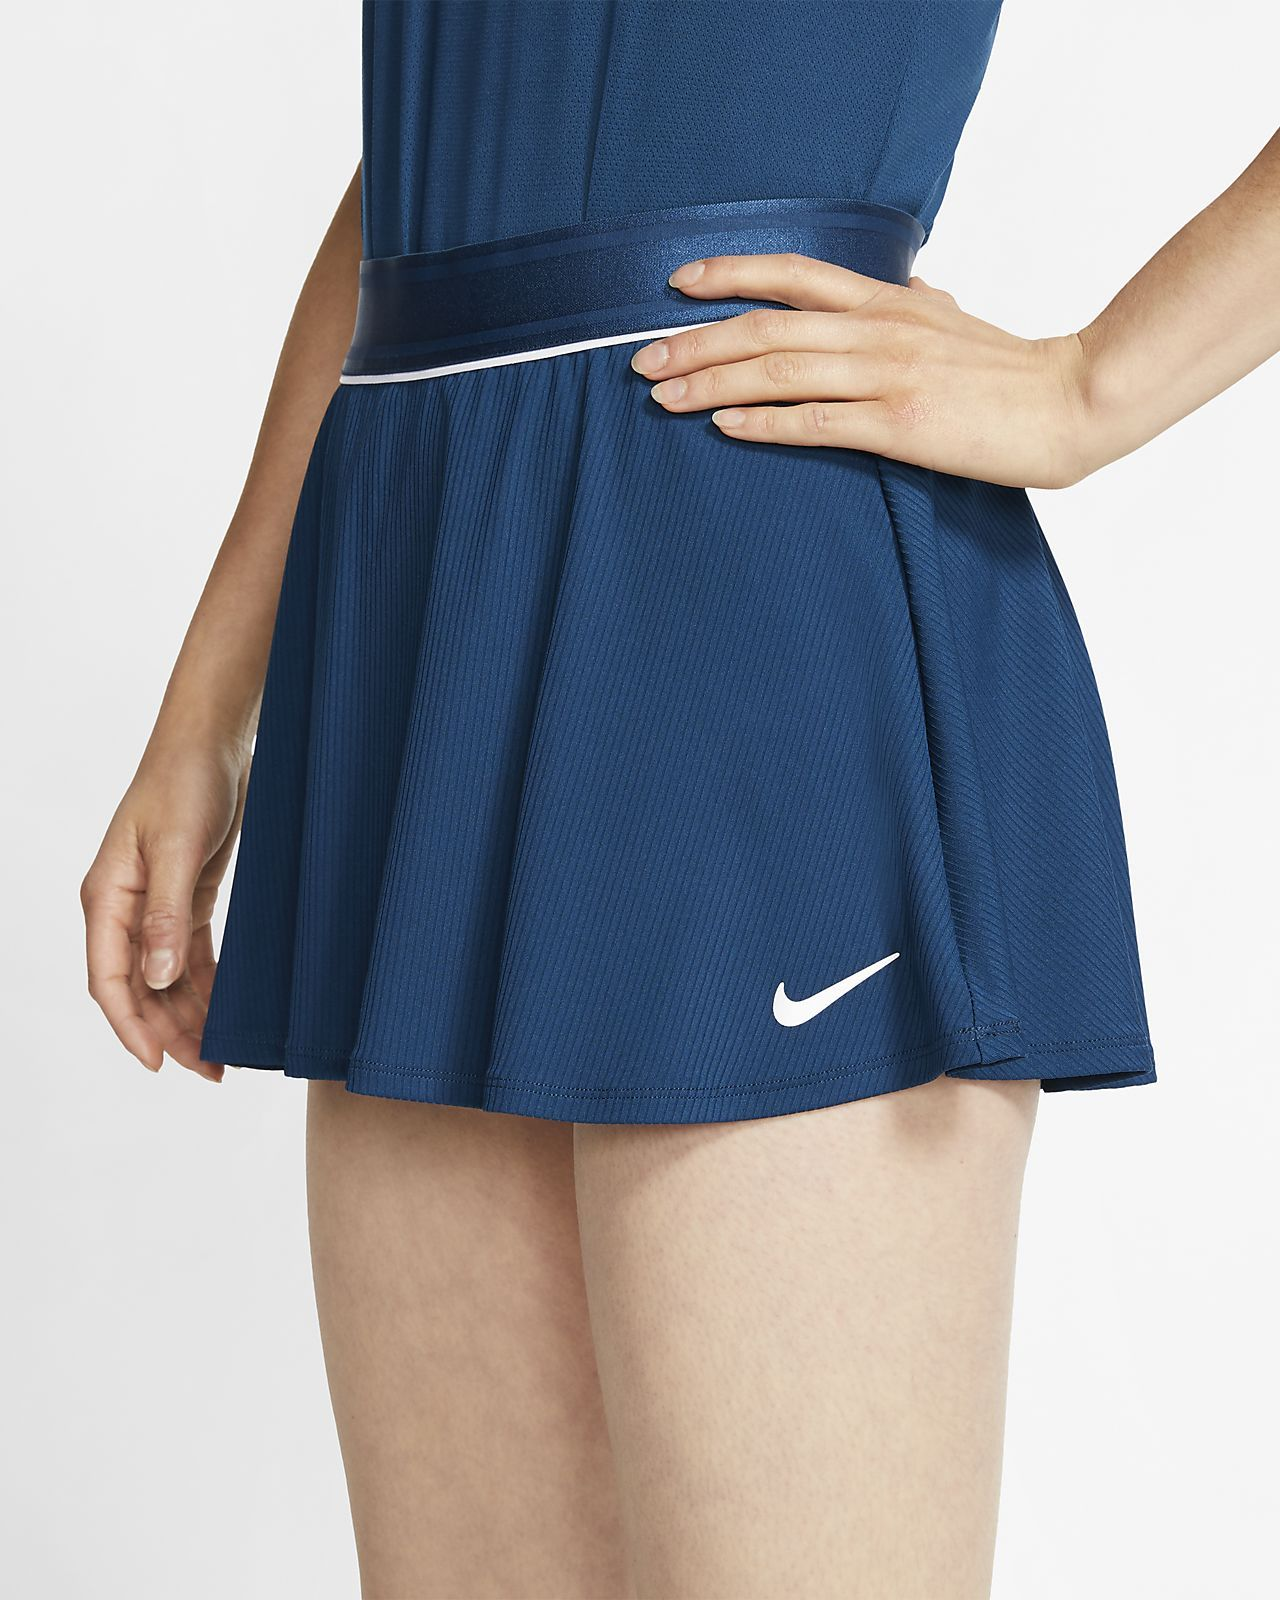 Nikecourt Dri Fit Women S Tennis Skirt Nike Com In 2020 Womens Tennis Skirts Tennis Skirt Fit Women Women's tennis skirts that are comfortable and cute for tennis matches or practice. pinterest